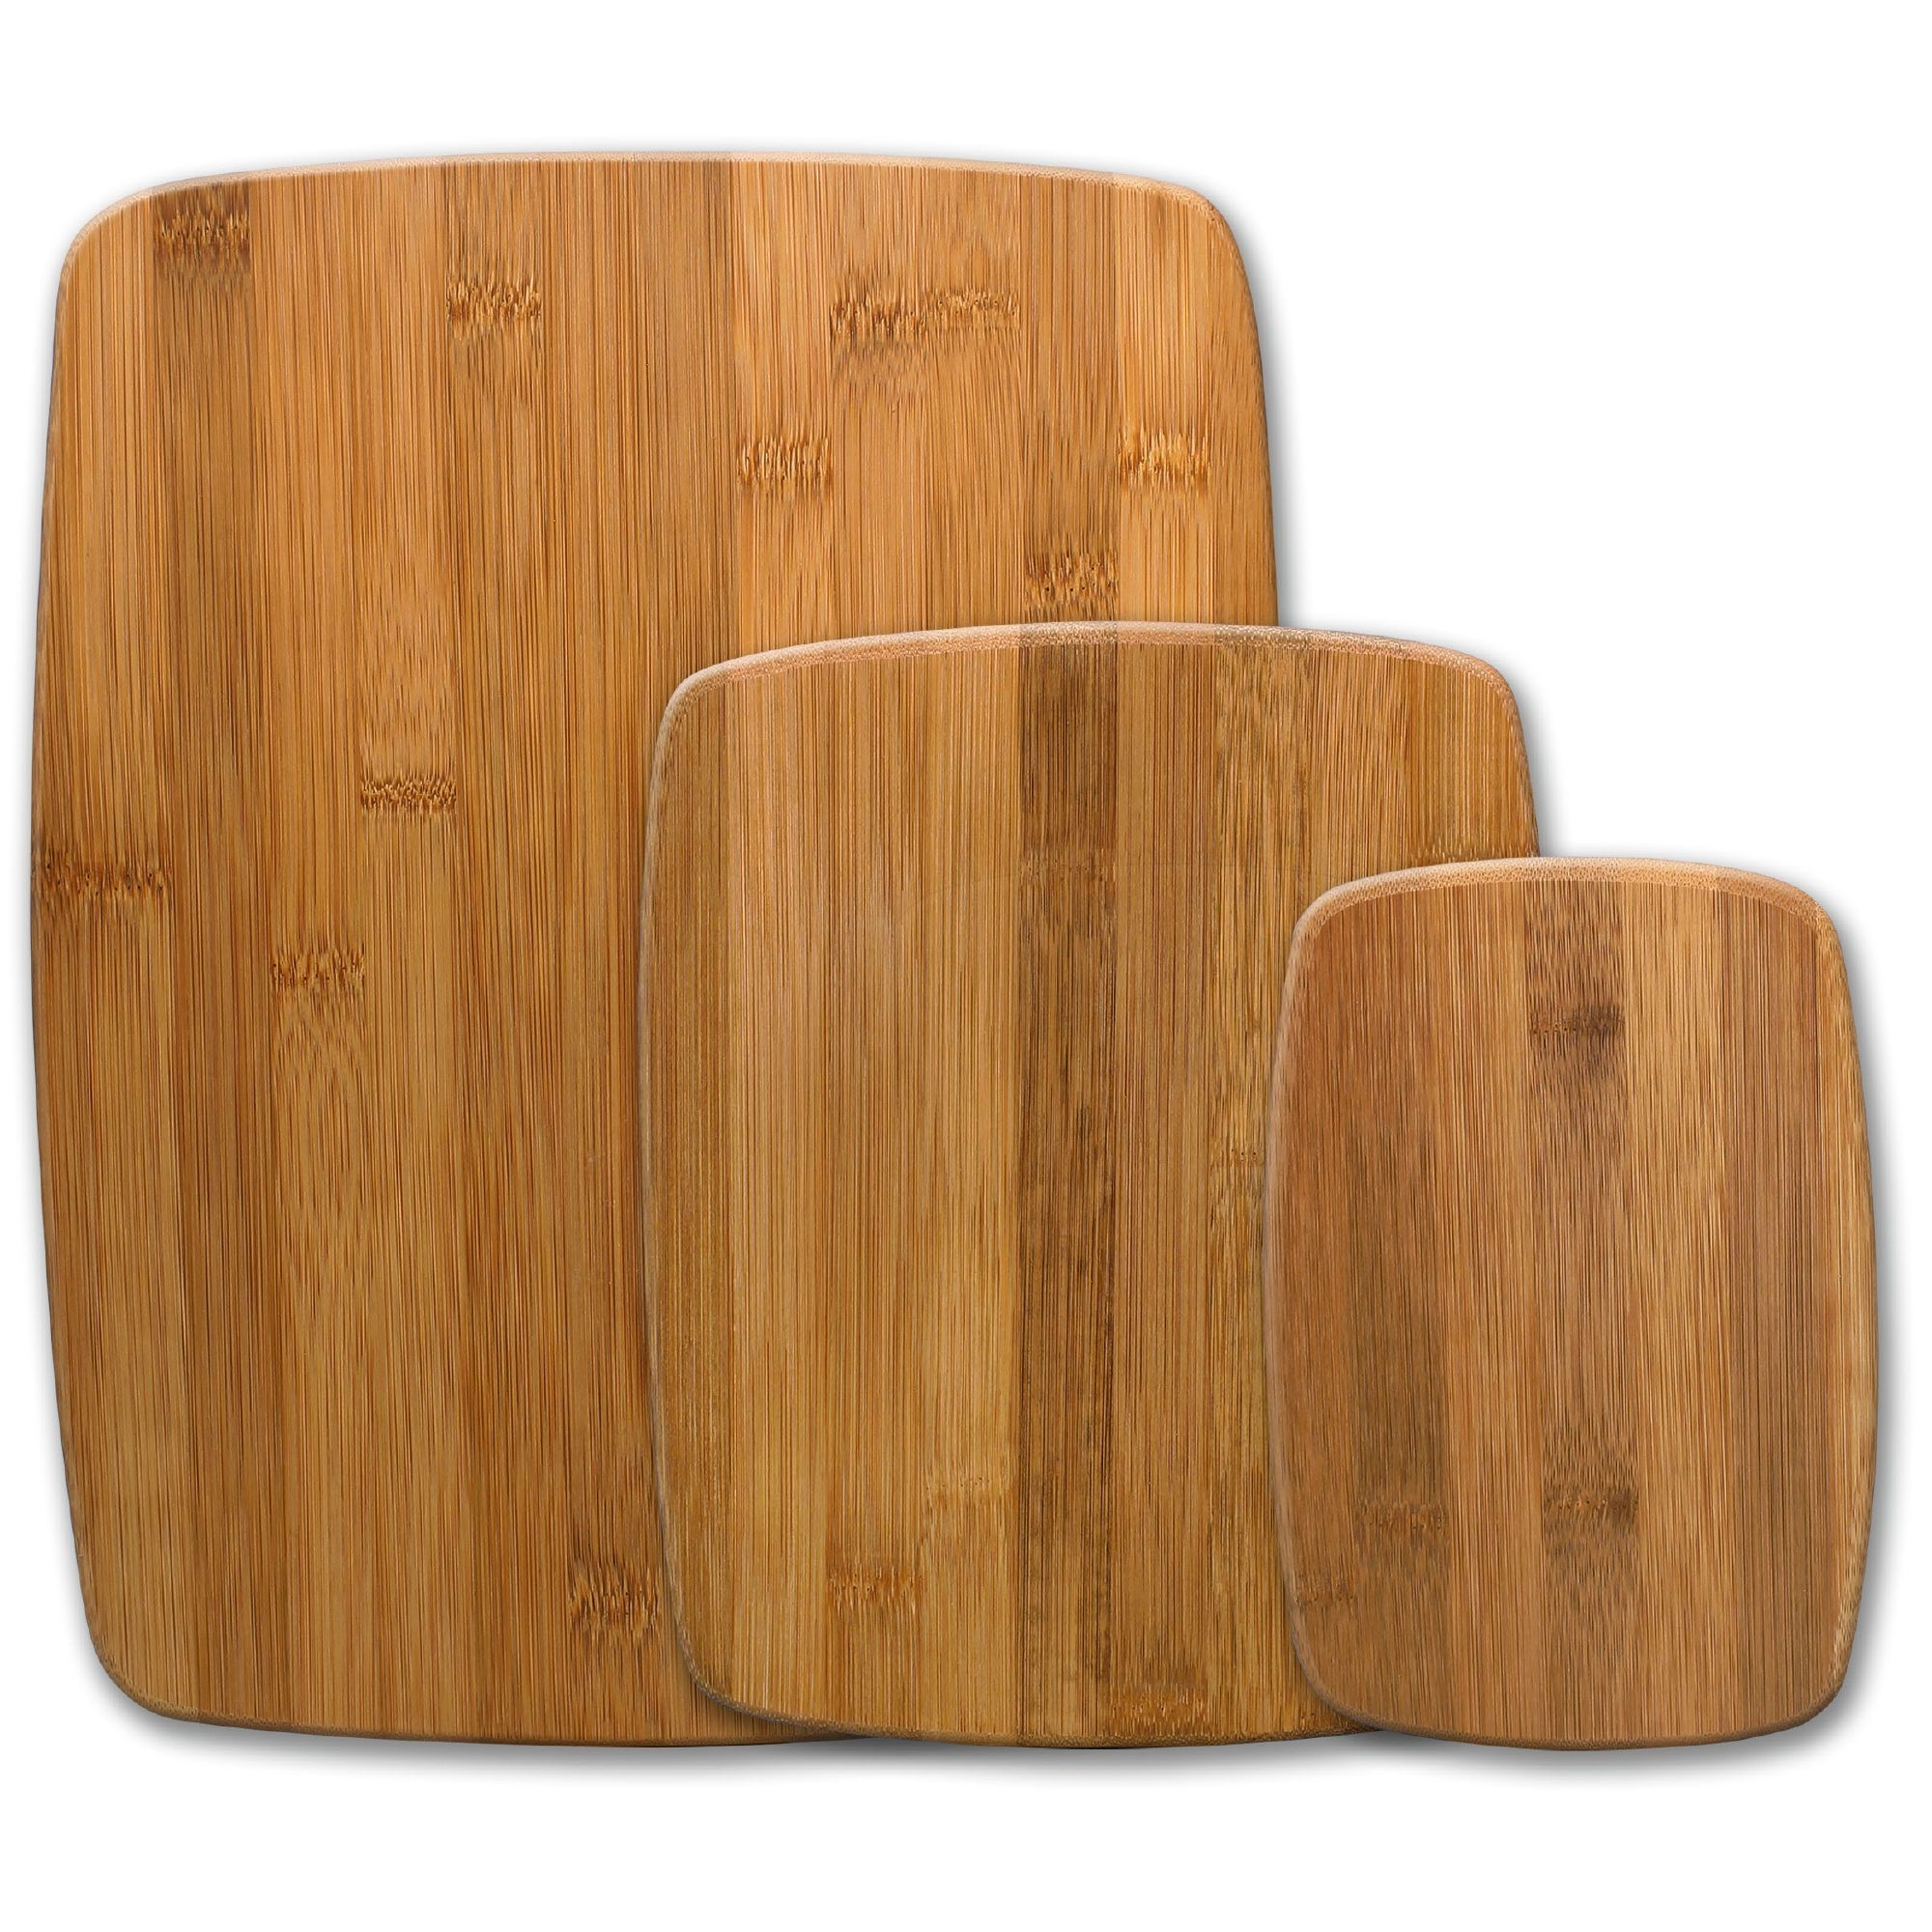 Bamboo wood natural solid wooden chopping block cutting board set of 3